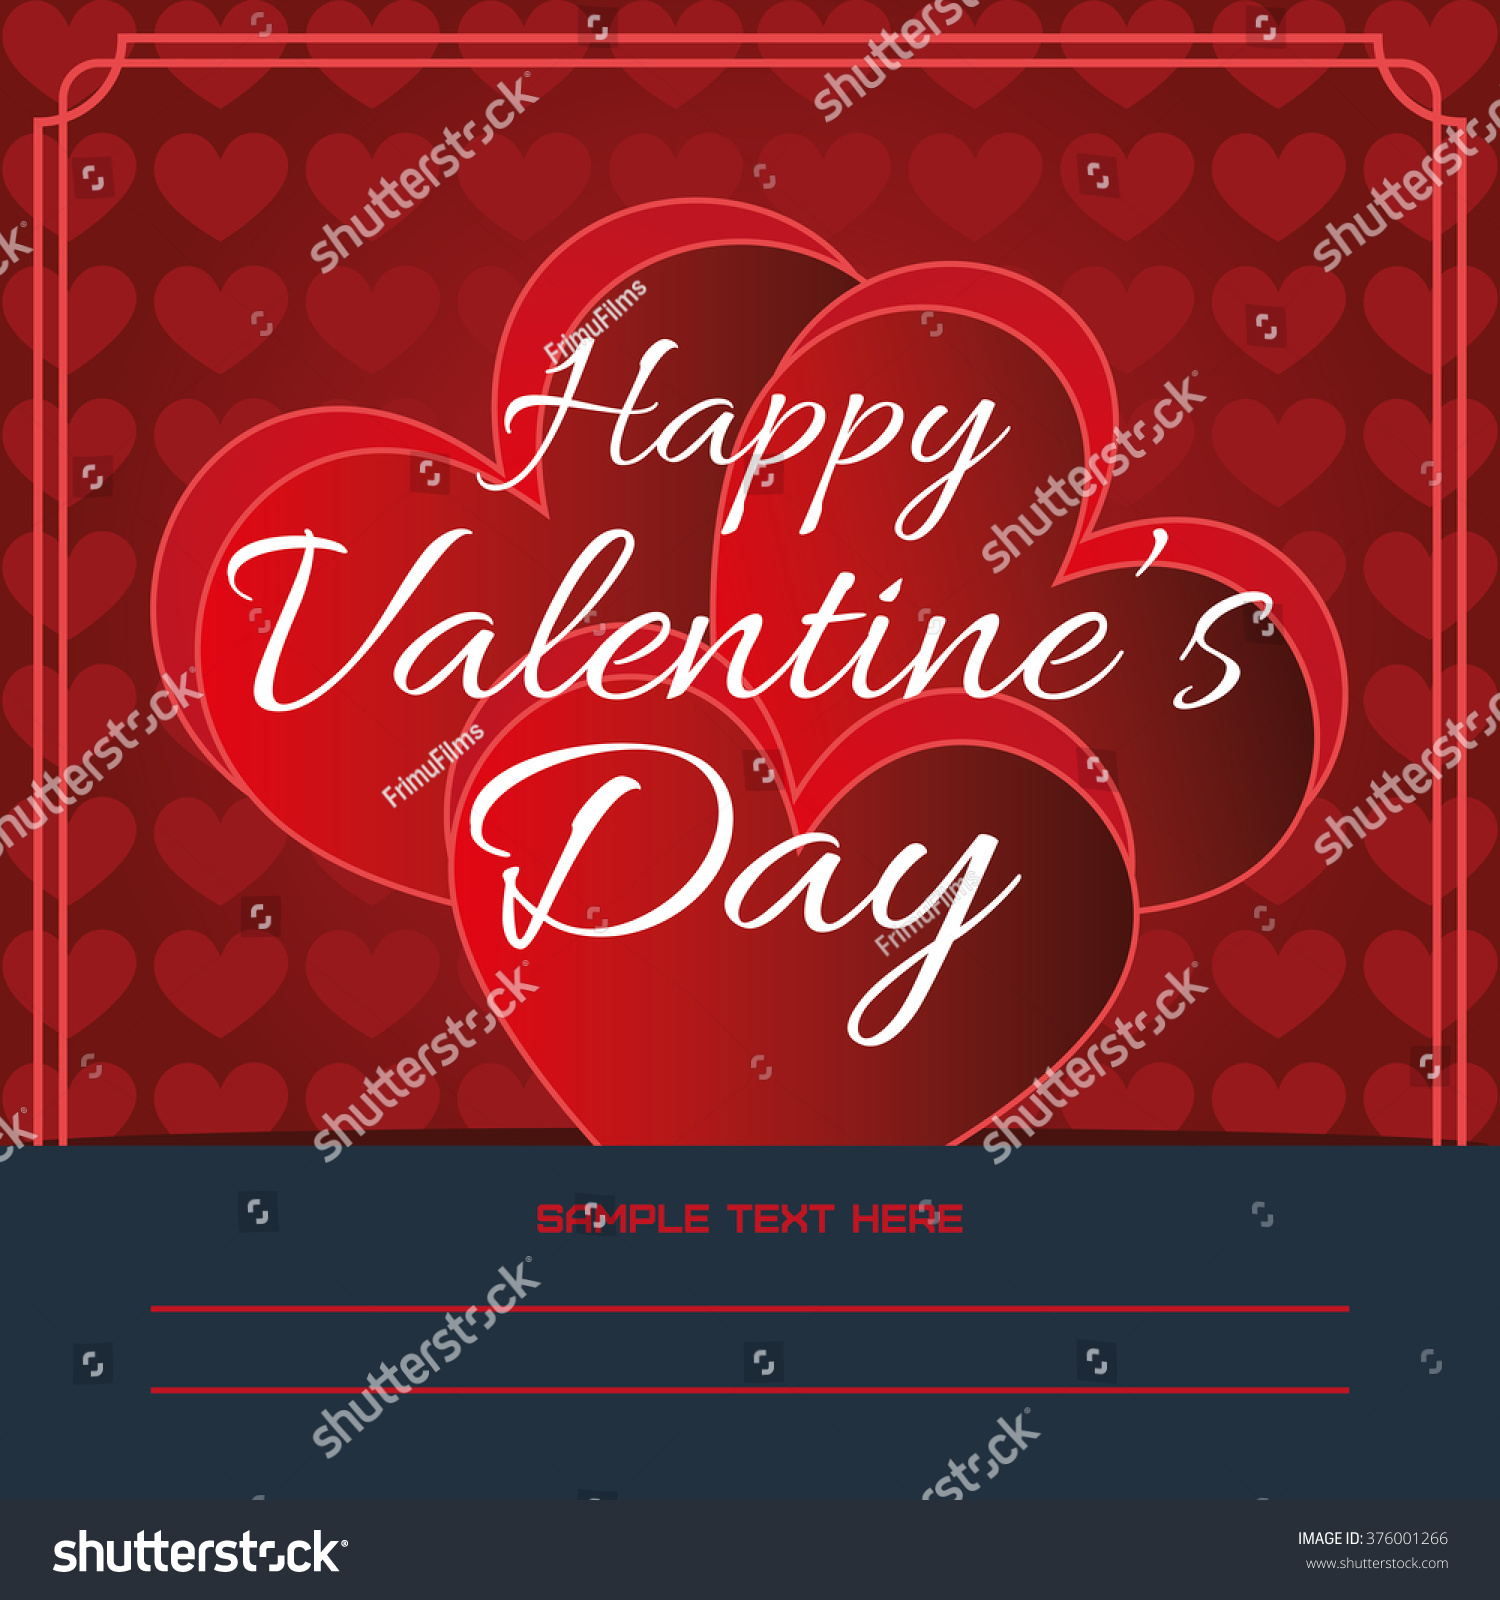 Happy Valentines Day Greeting Cards Ecards Greetings Inducedfo